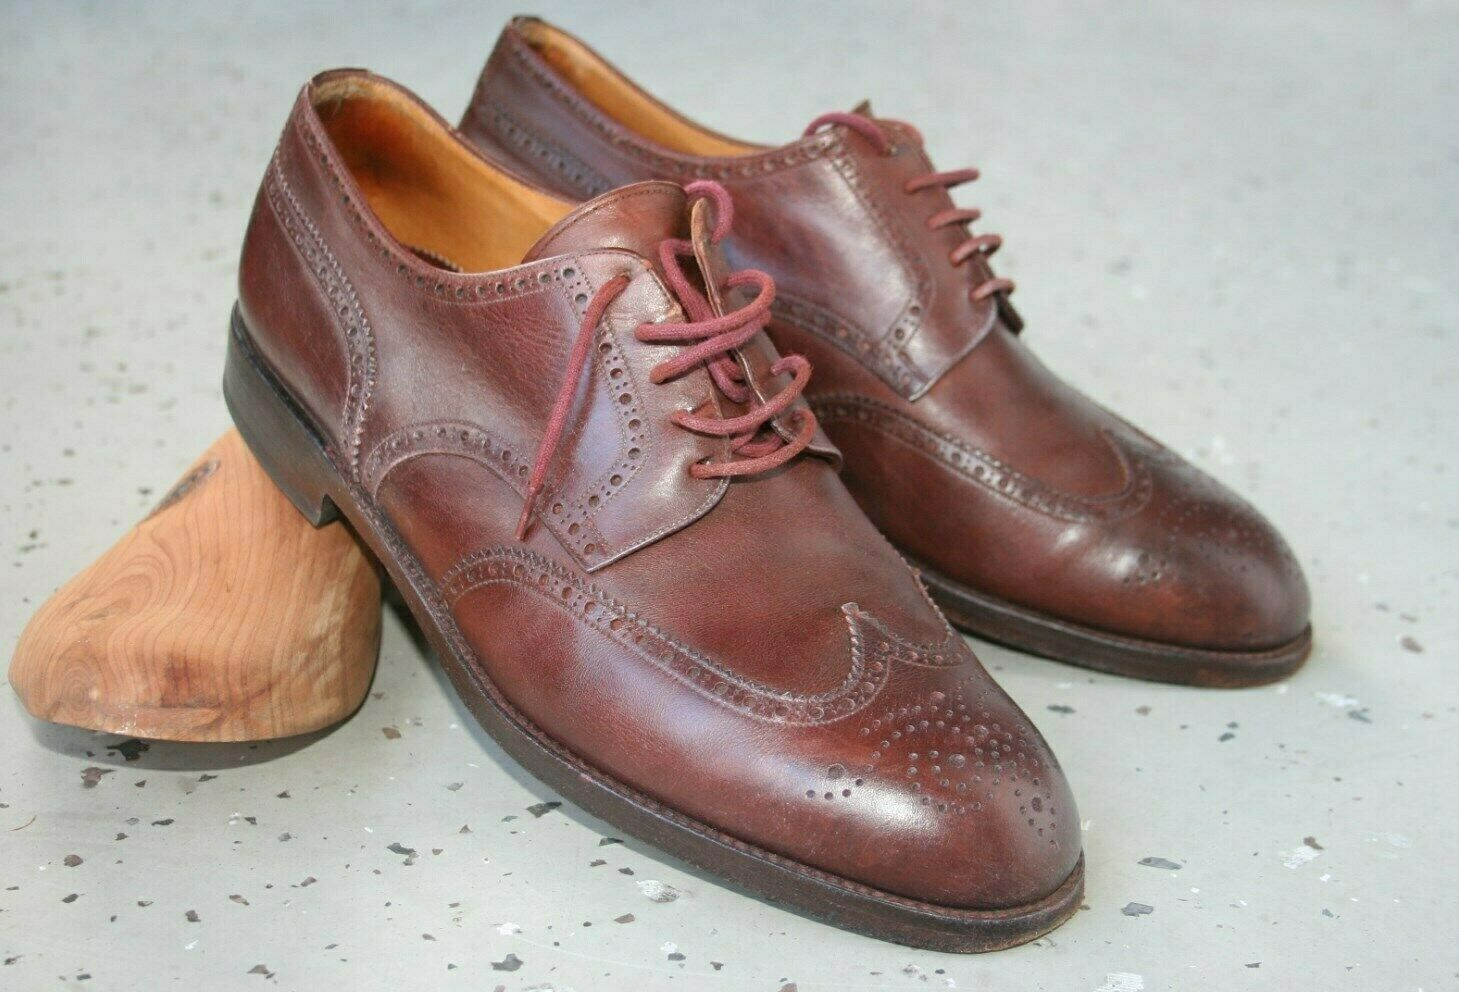 Yanko handmade Business Leather schuhe Spain 8 oder 42  Schuhe Cosido Goodjear